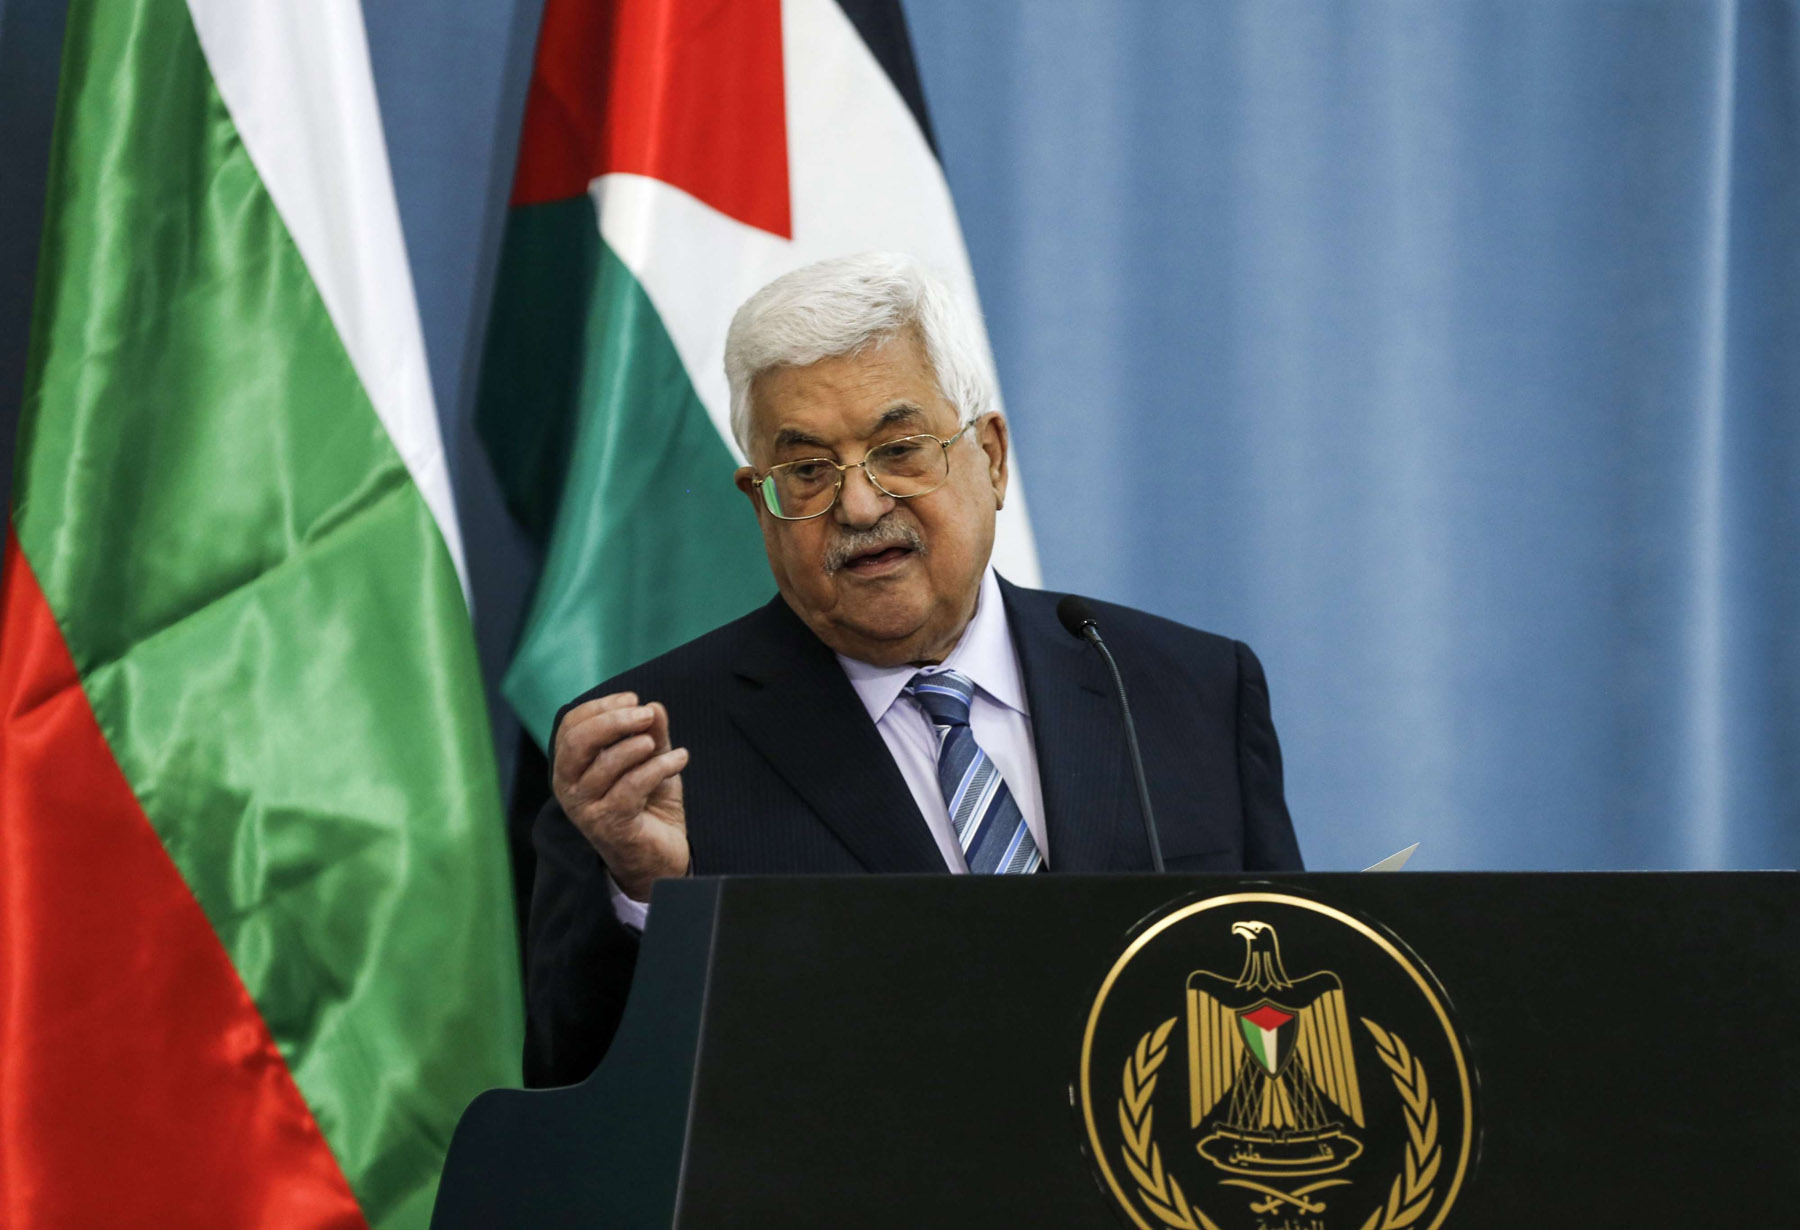 Palestinian Authority president Mahmoud Abbas speaks during a press conference in the West Bank city of Ramallah. (AFP)